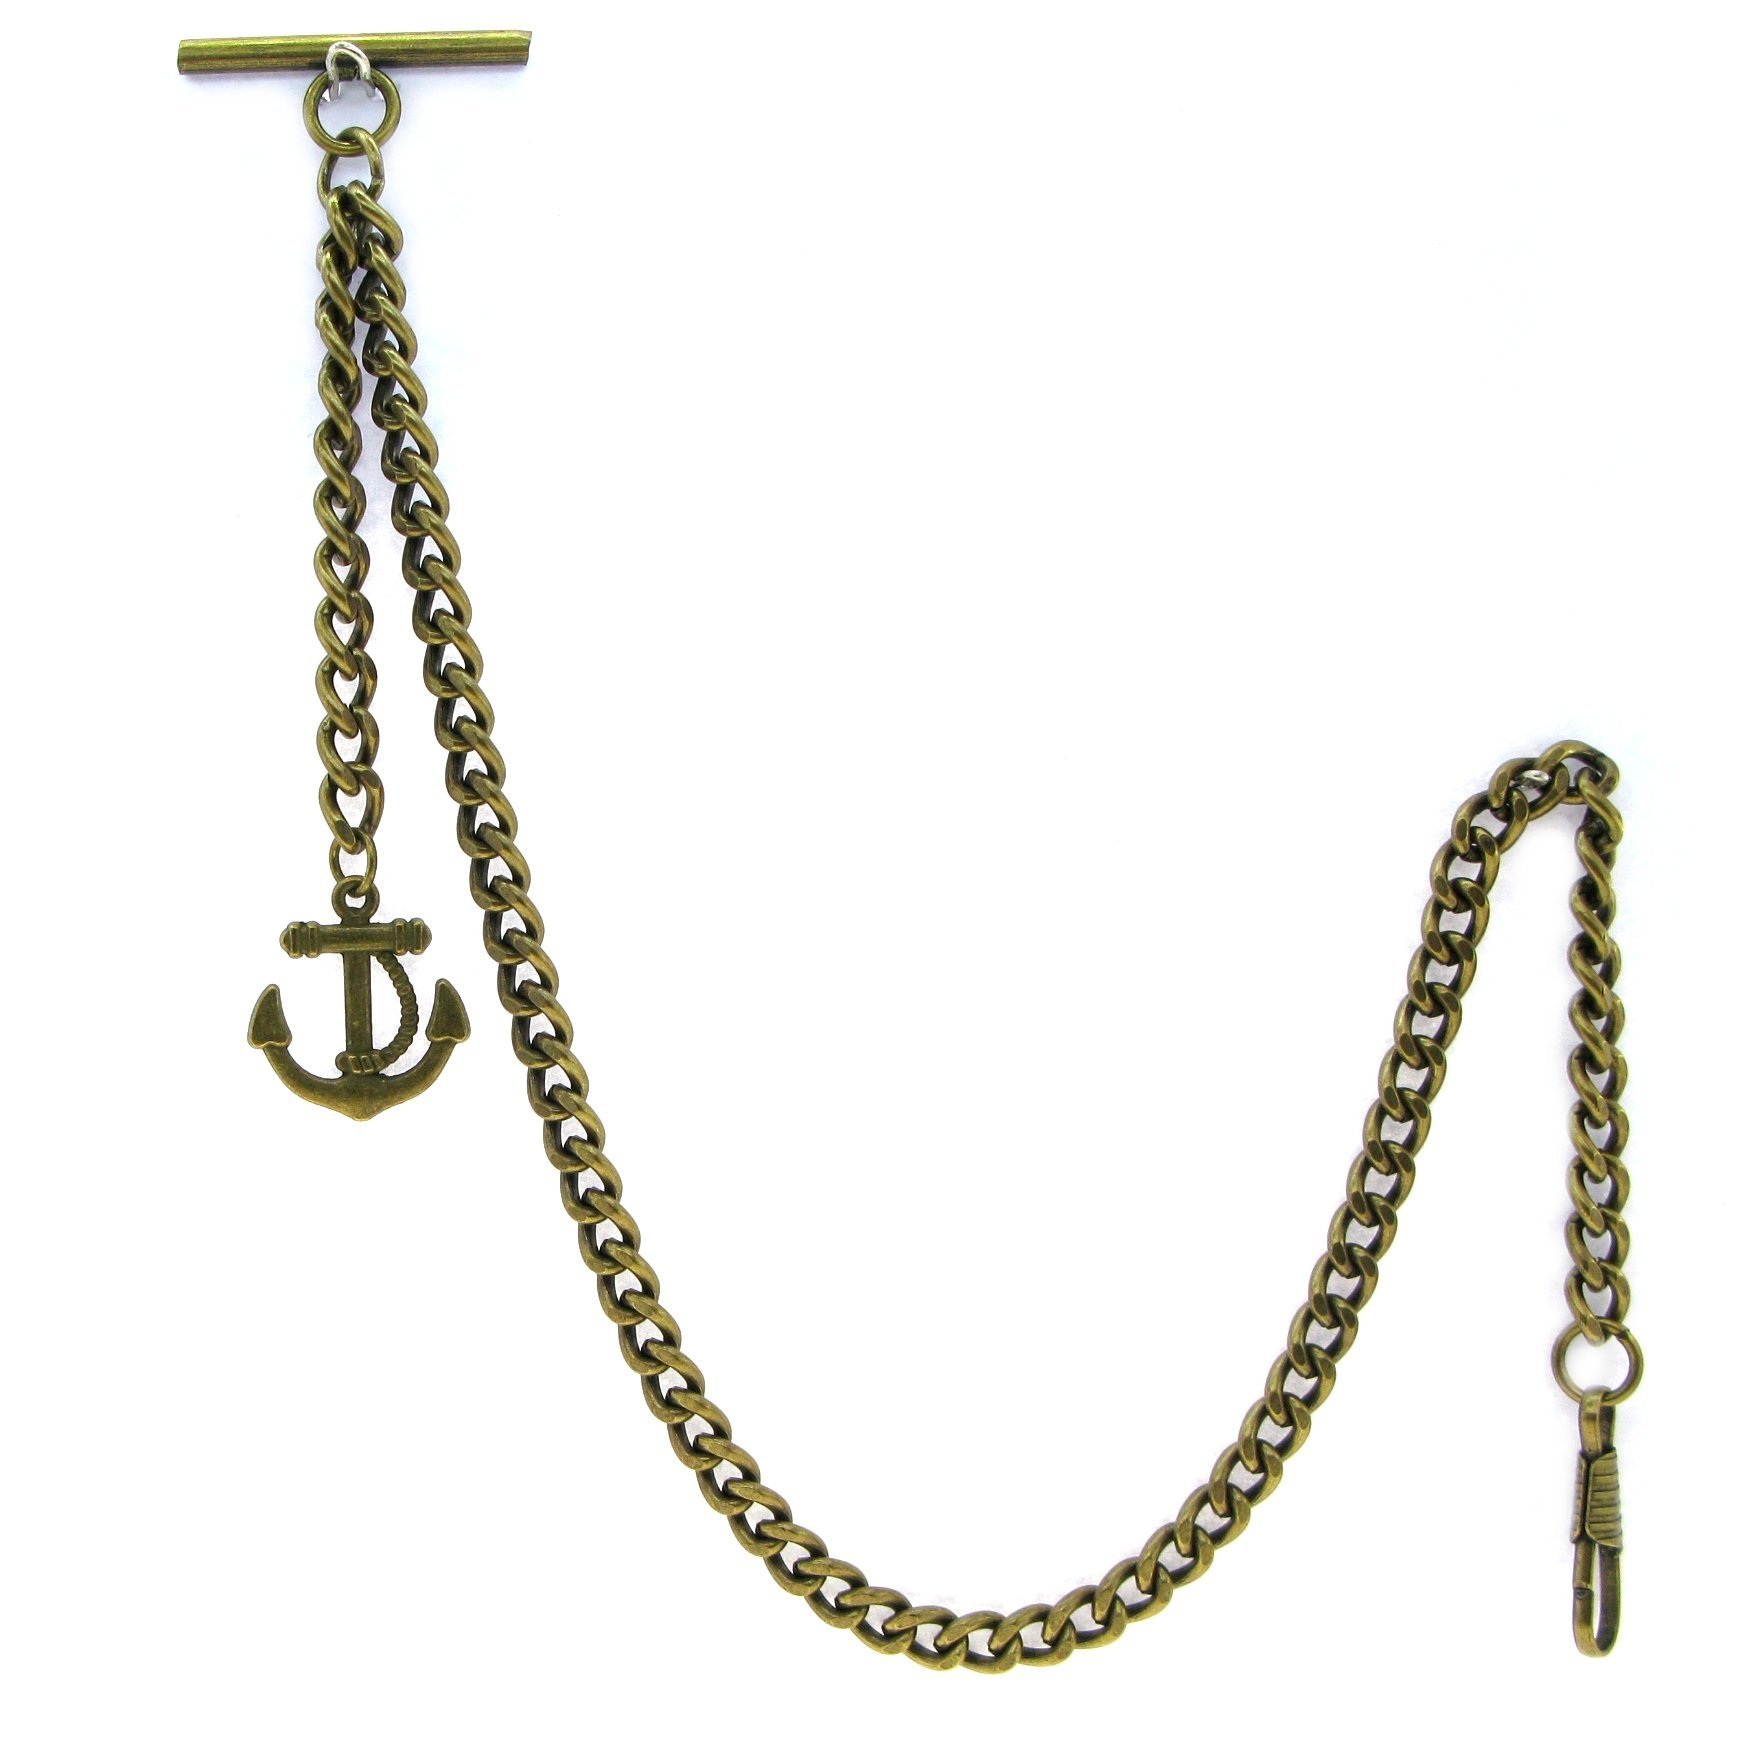 Albert Chain Pocket Watch Curb Link Chain Antique Brass Plating Anchor Fob T Bar AC24